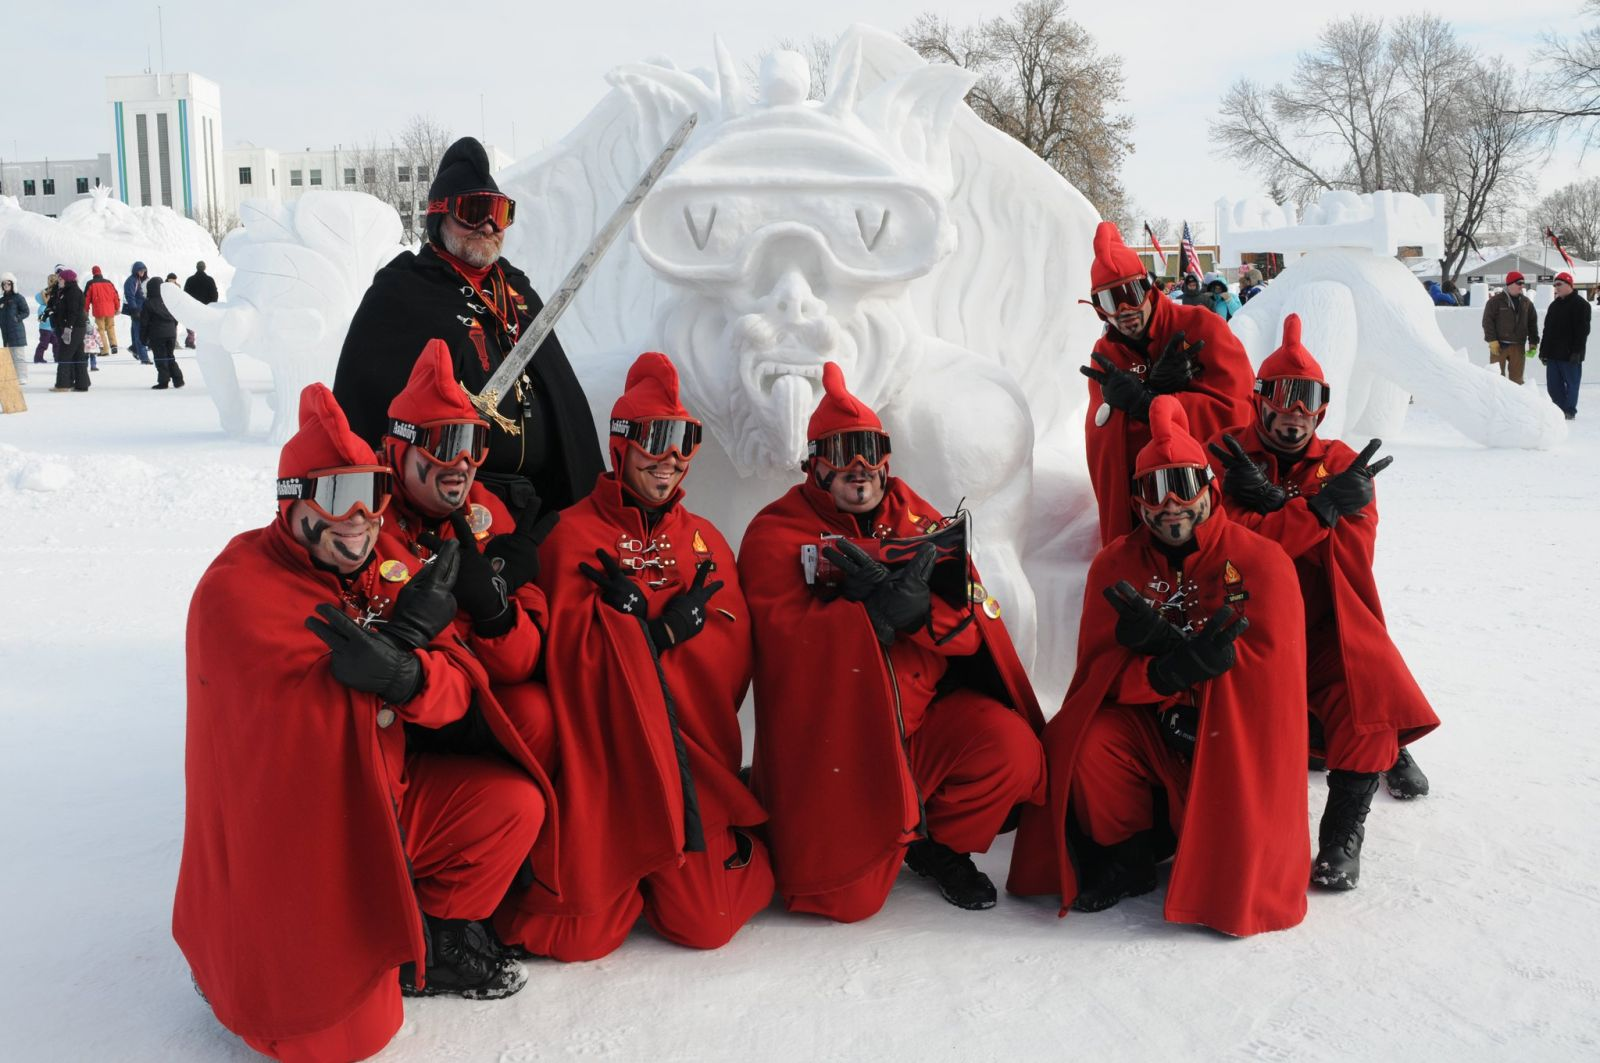 Vulcans Of The St. Paul Winter Carnival Are Joining Us!